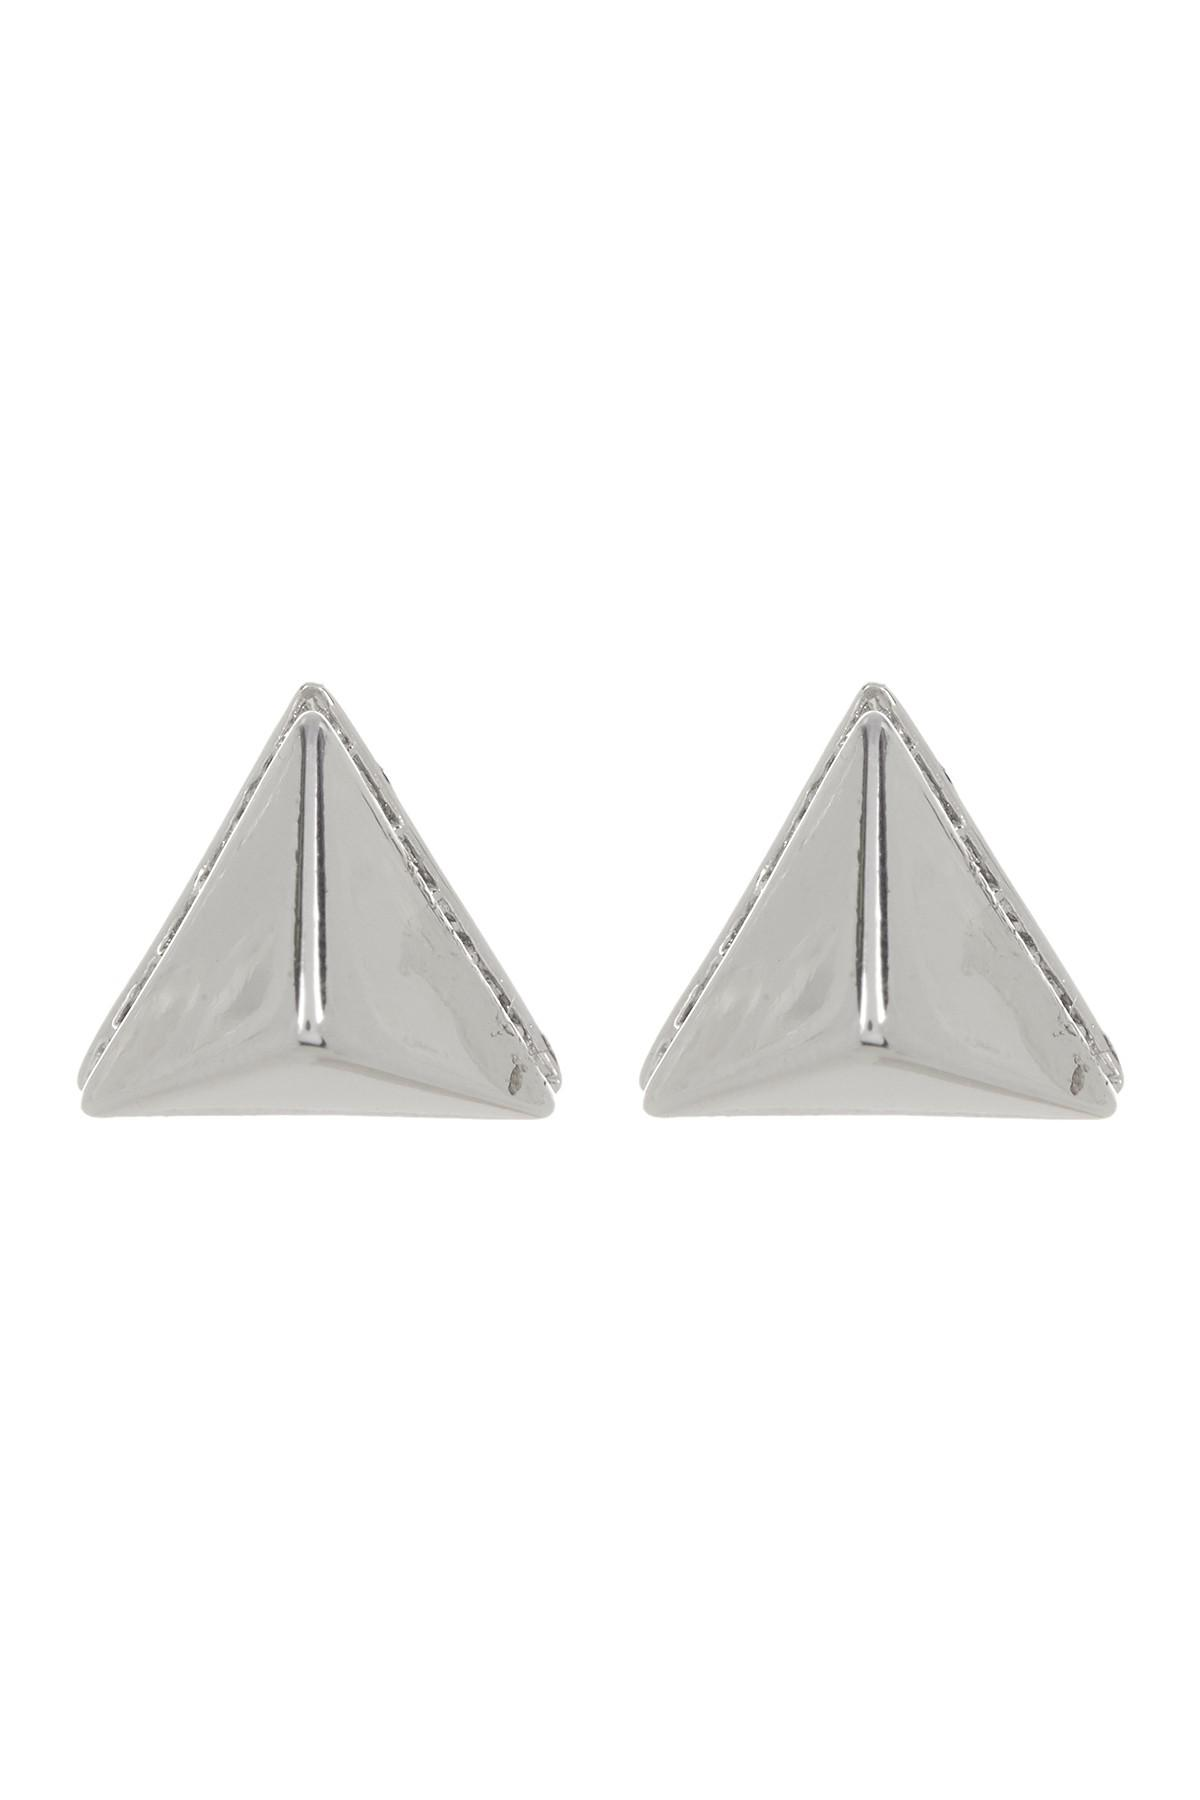 Vince Camuto Women S Metallic Crystal Accent Base Pyramid Stud Earrings